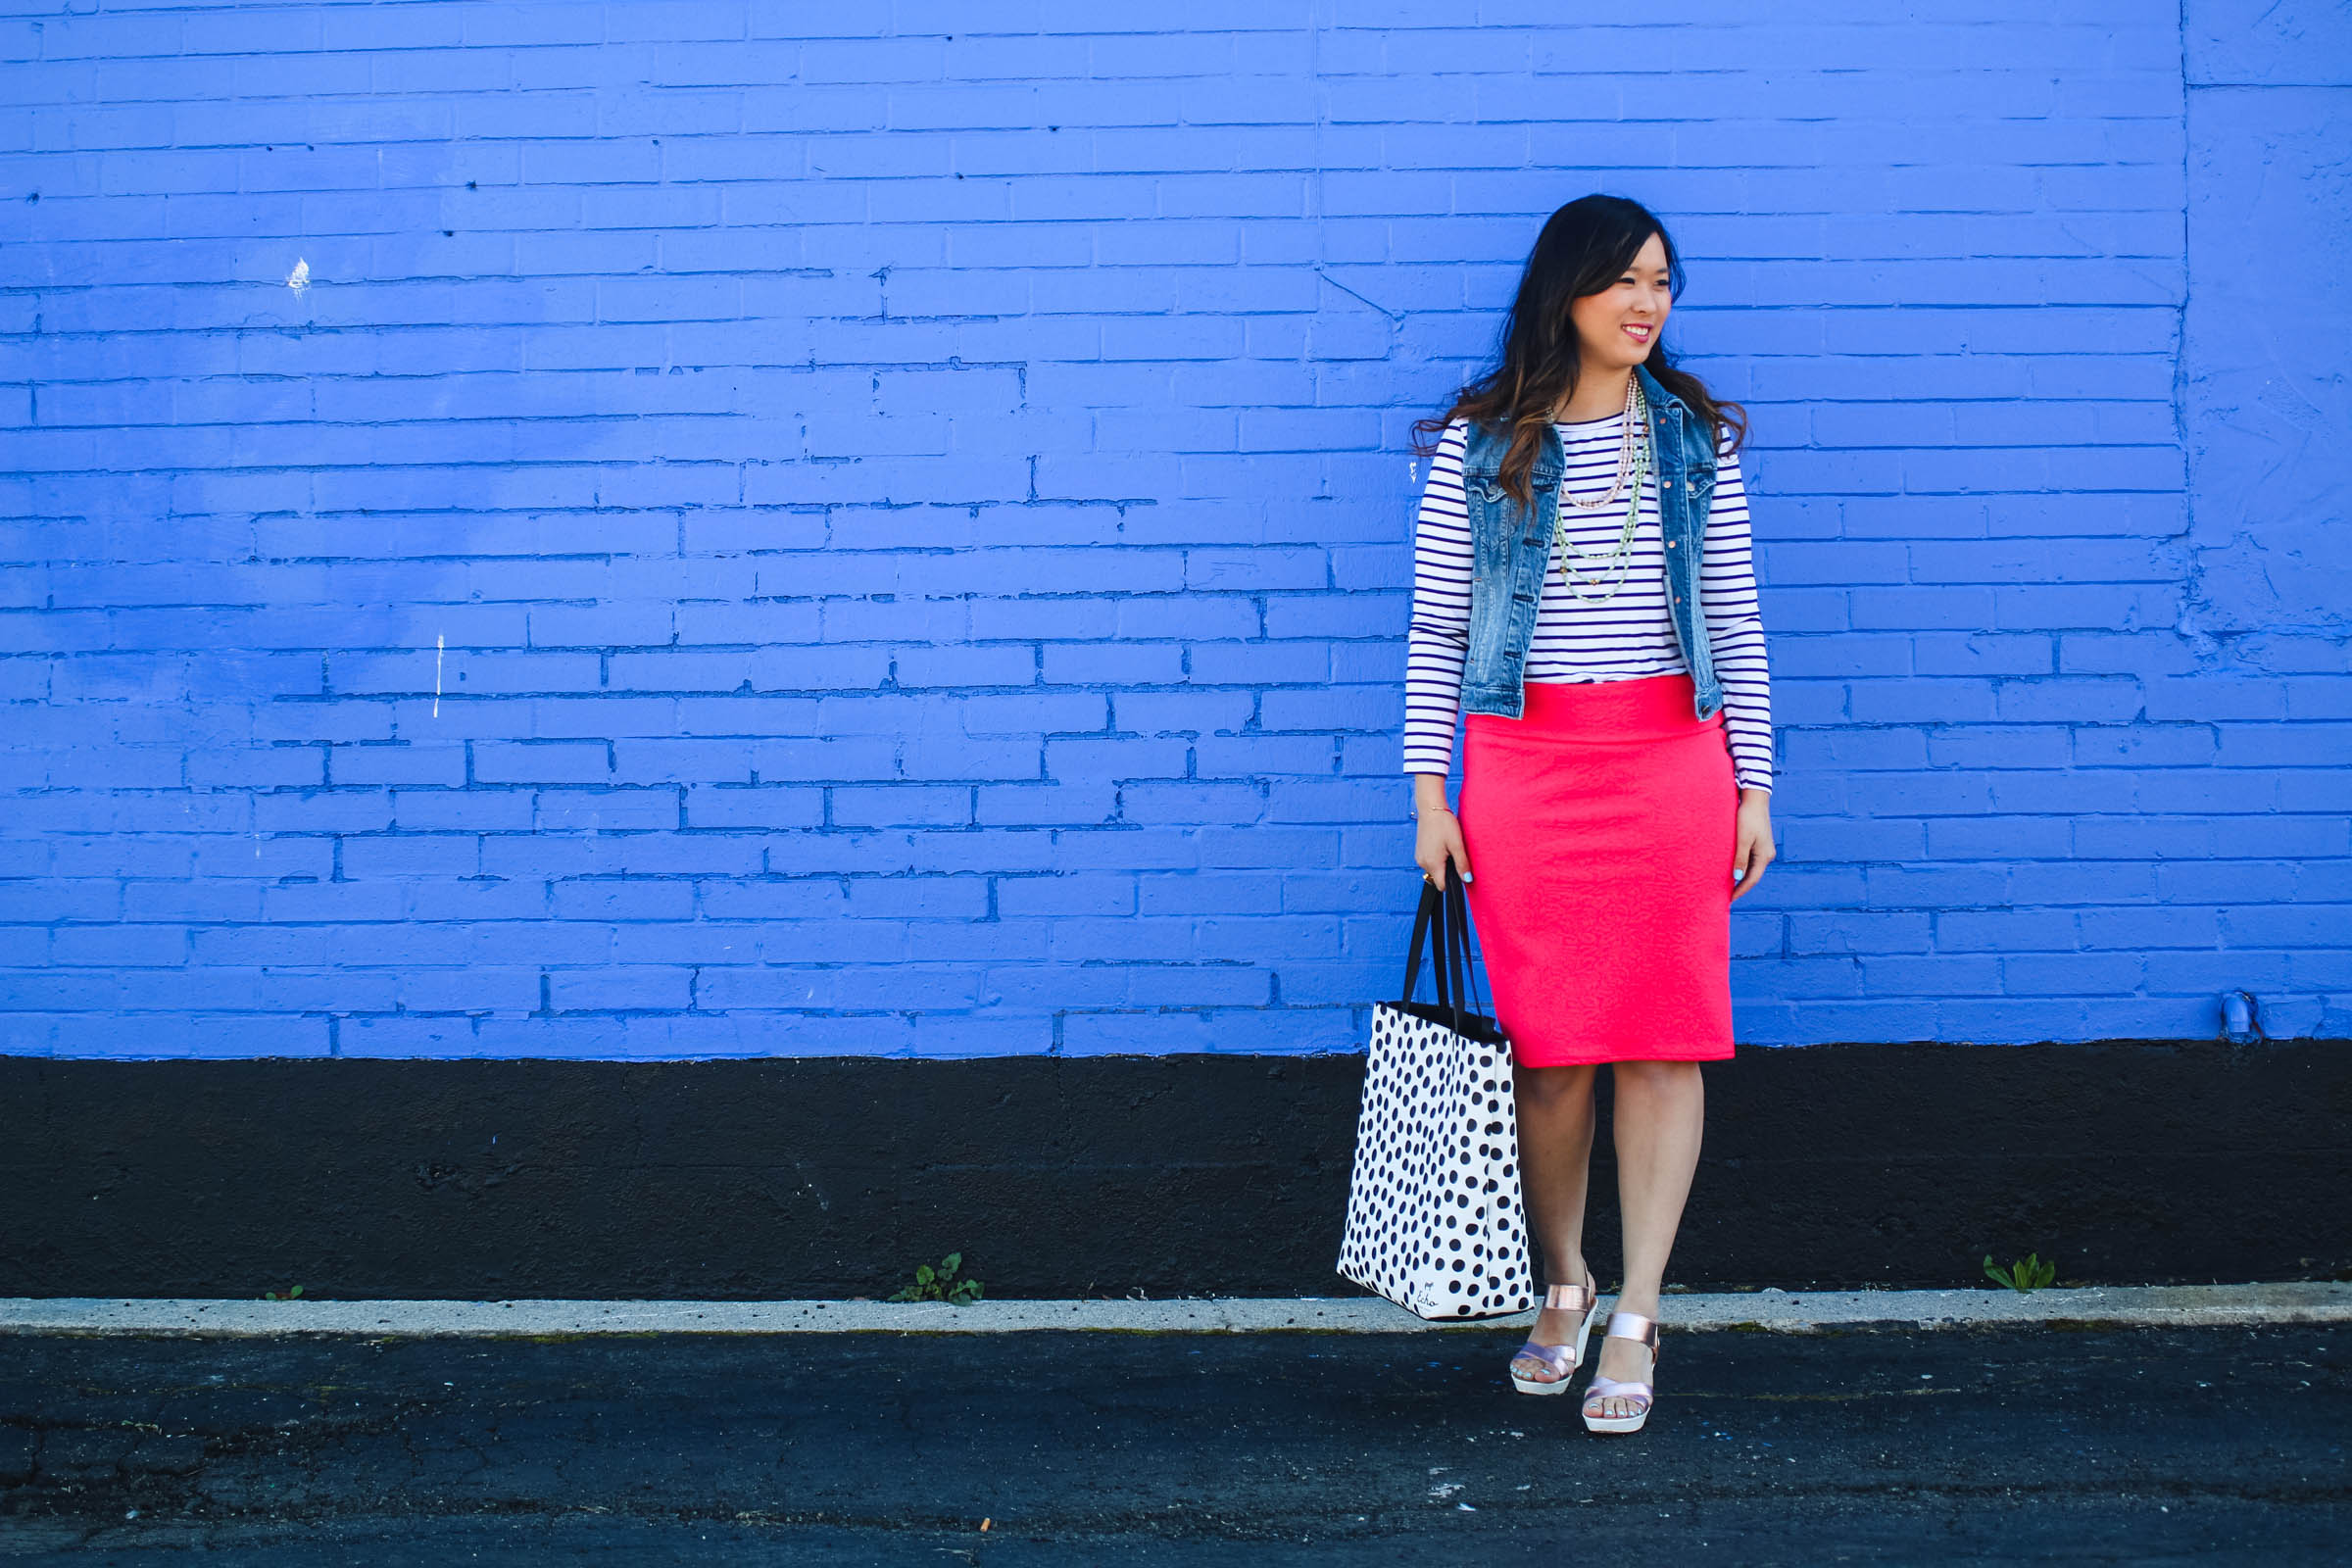 Stripes and polka dots pattern mixing